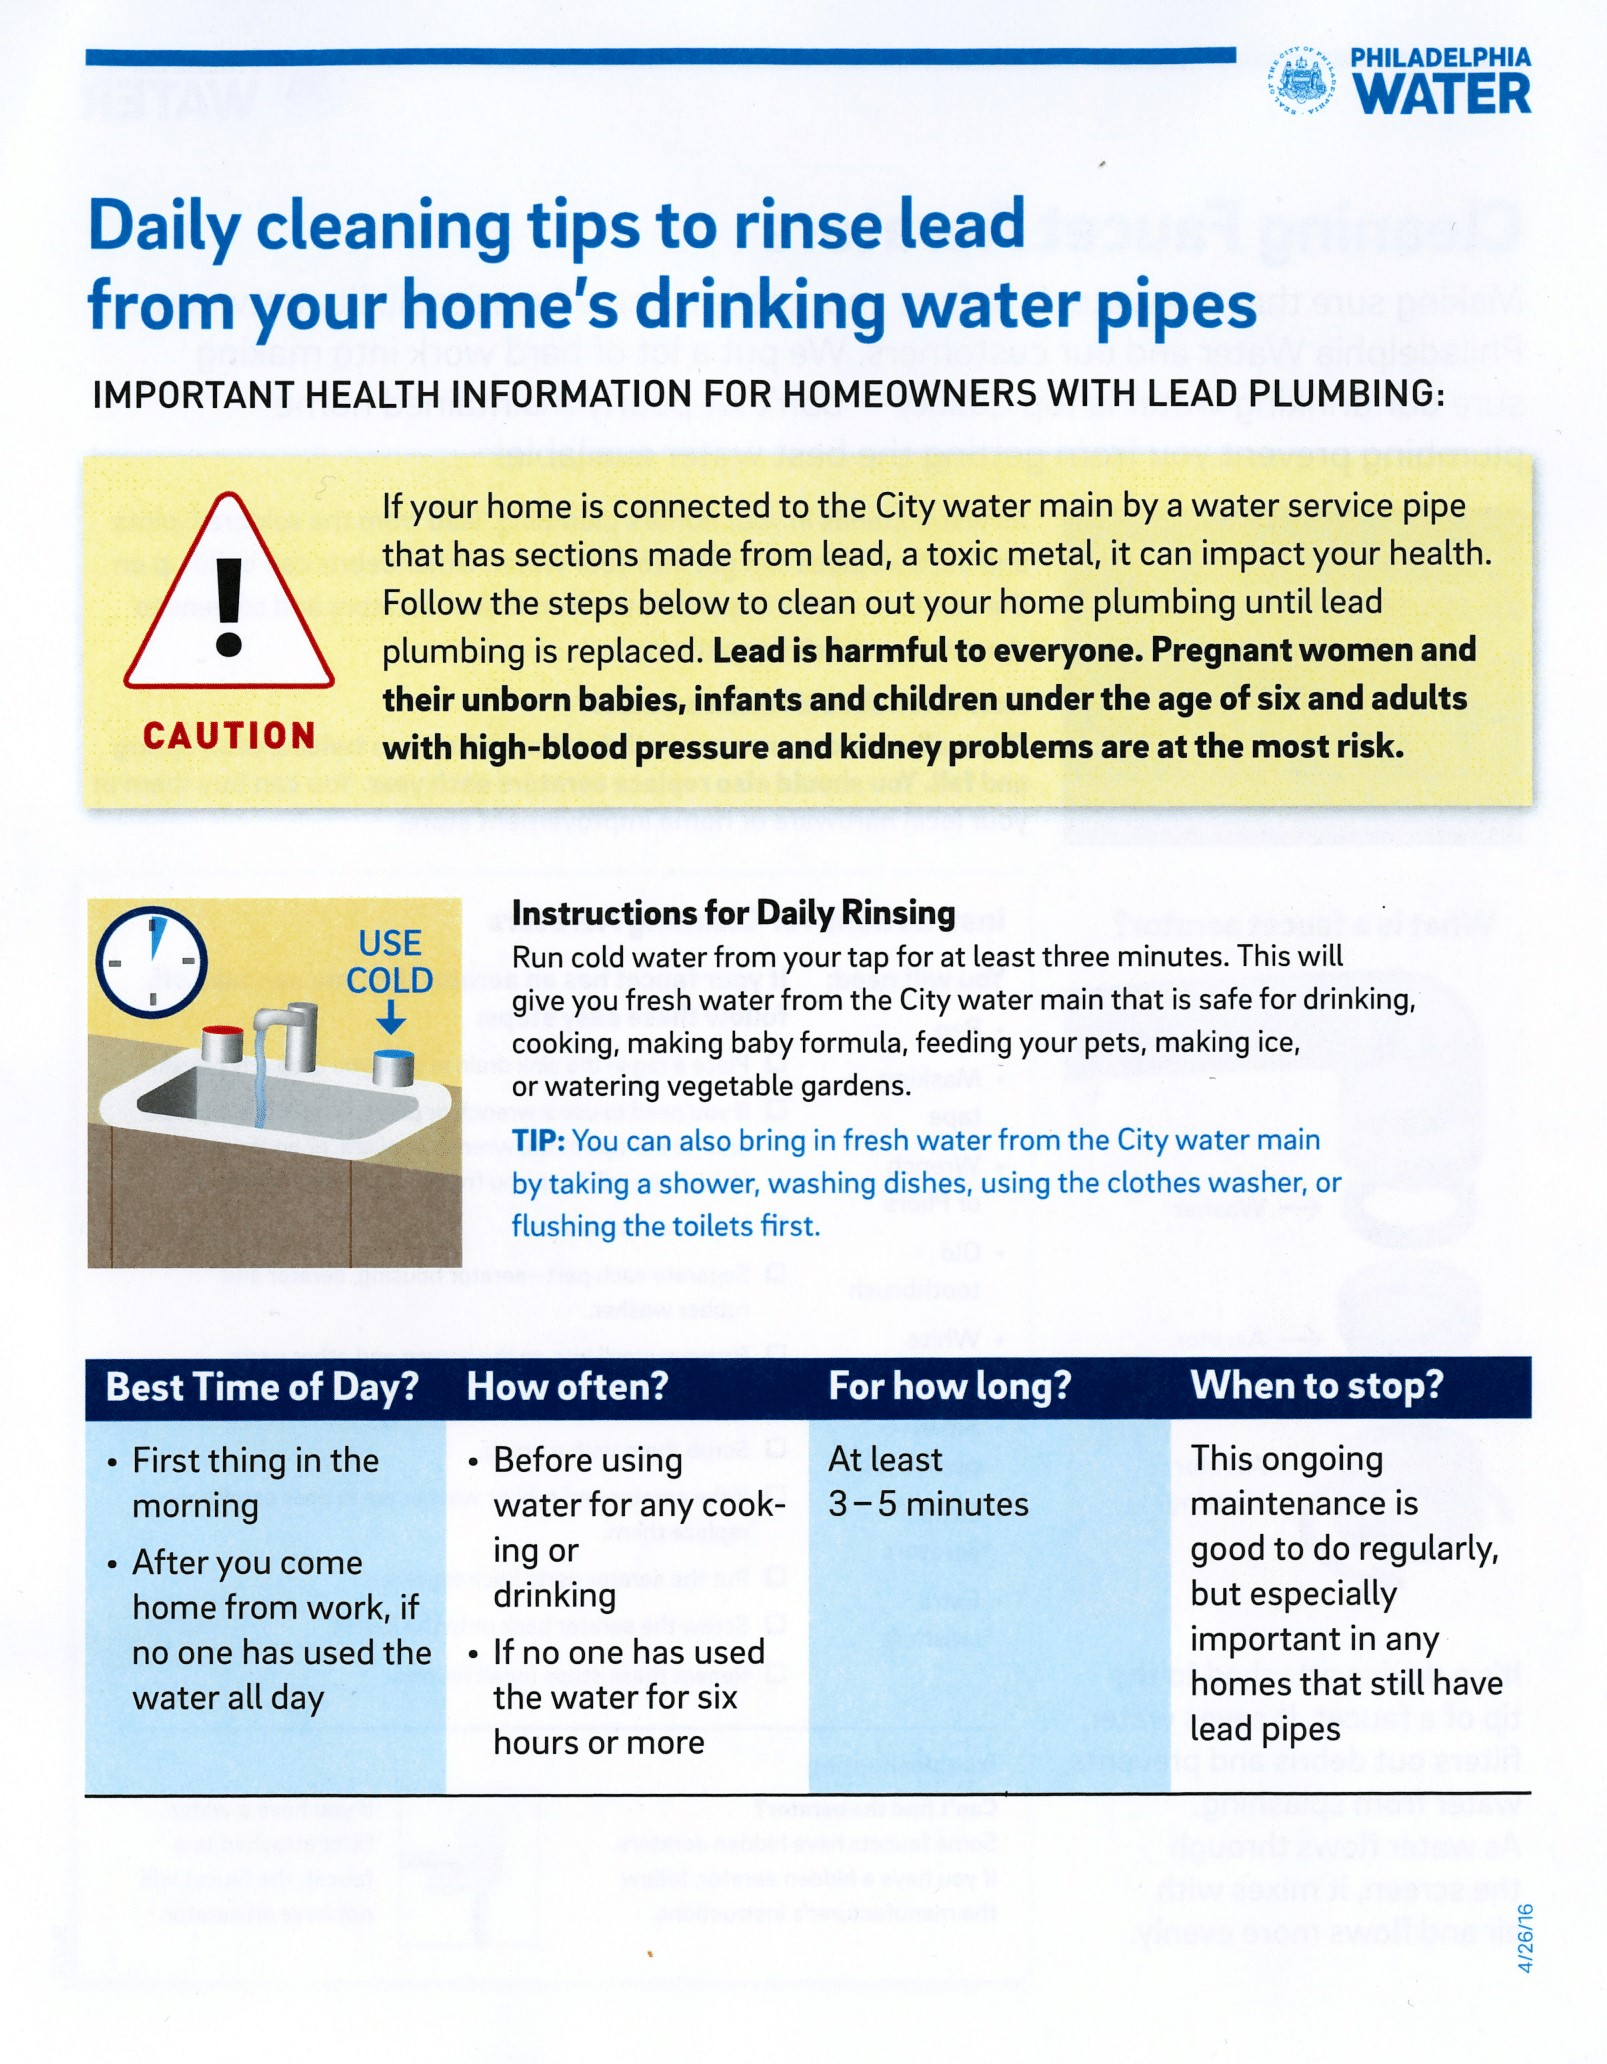 Tips rinse lead from pipes 1.jpg